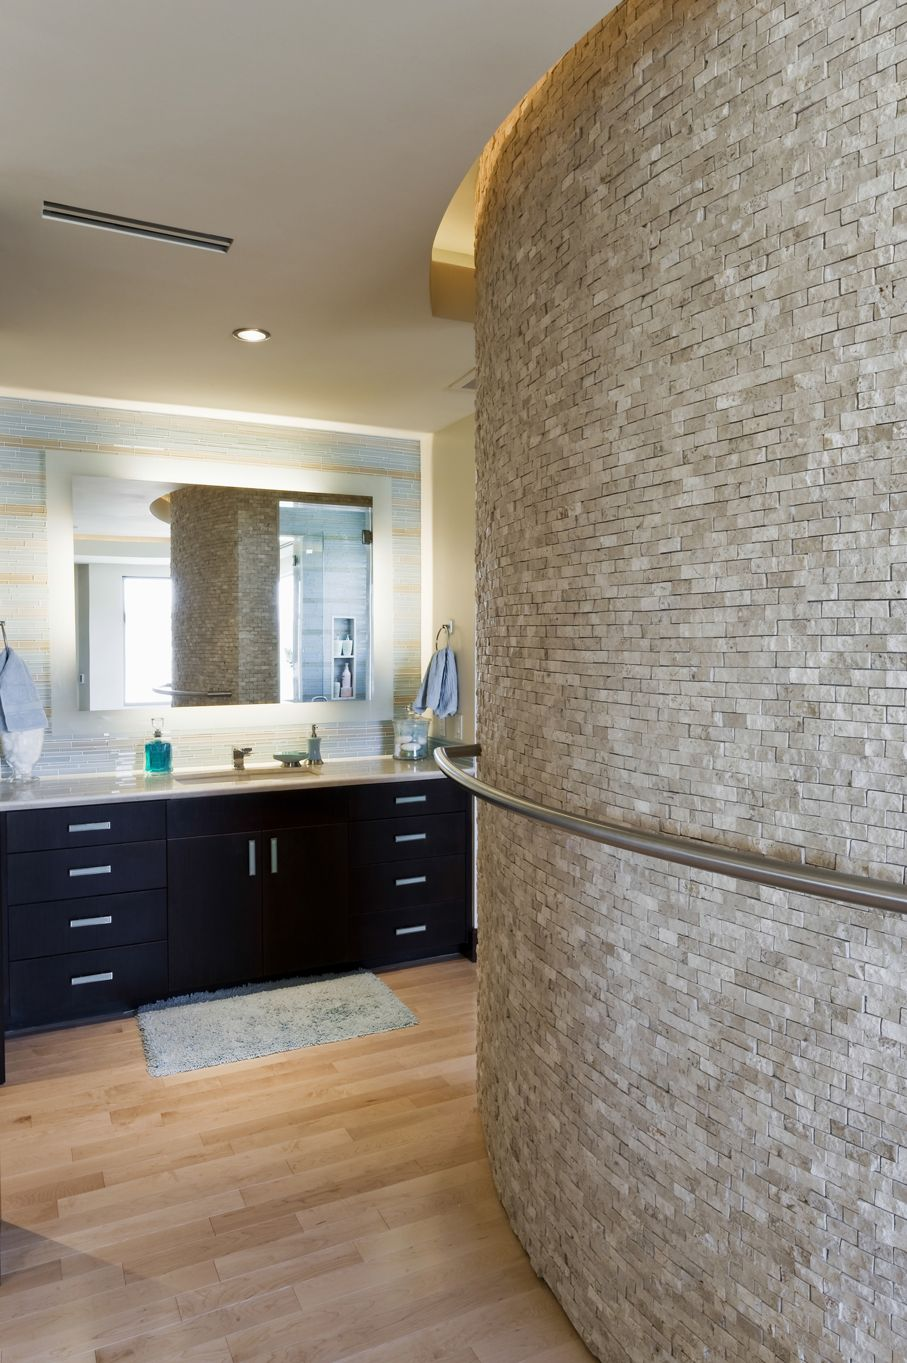 Bathroom With Curved Stone Wall And Cabinets